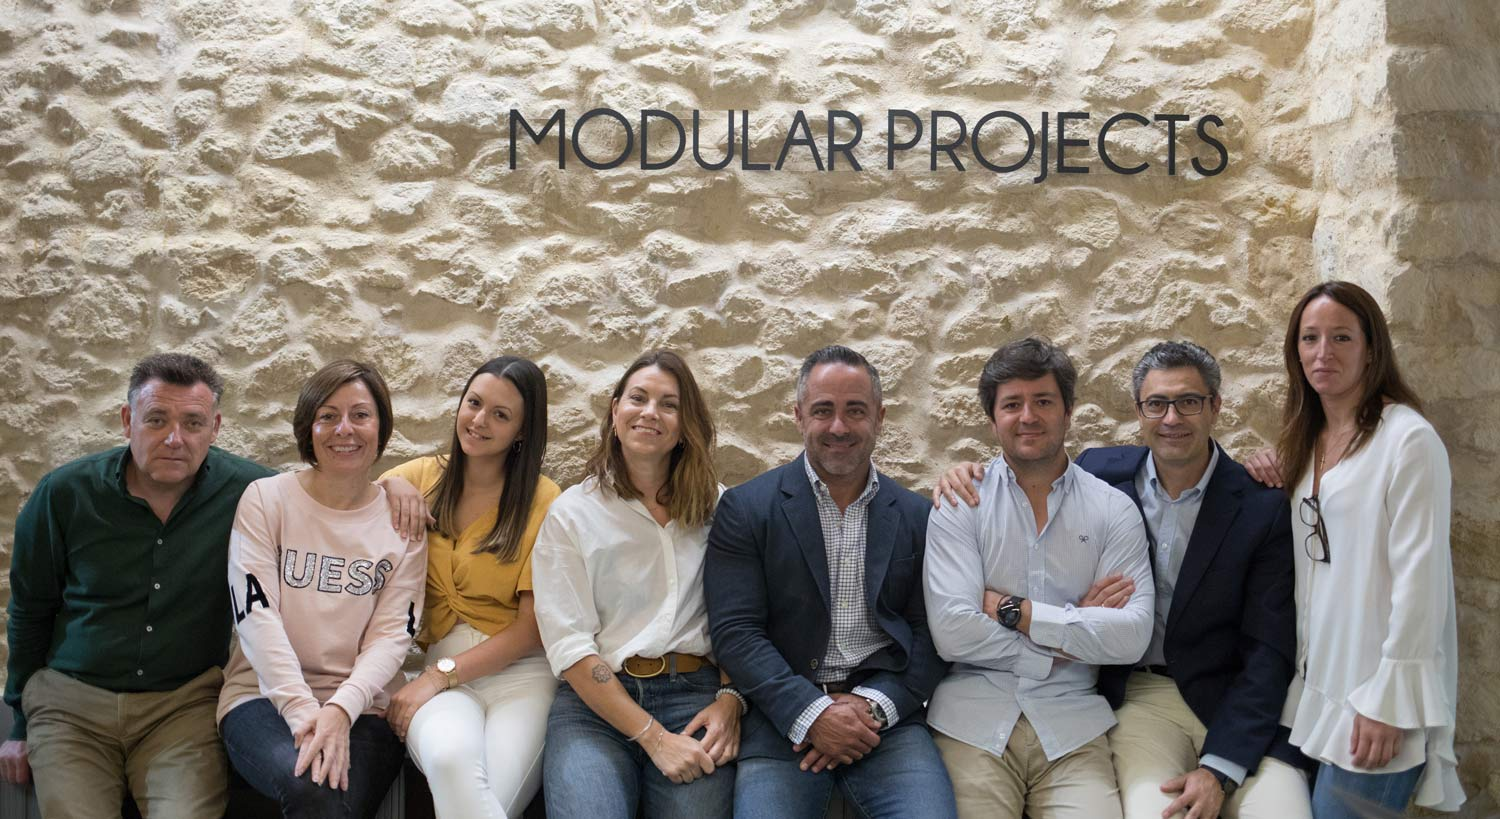 Equipo Modular Projects